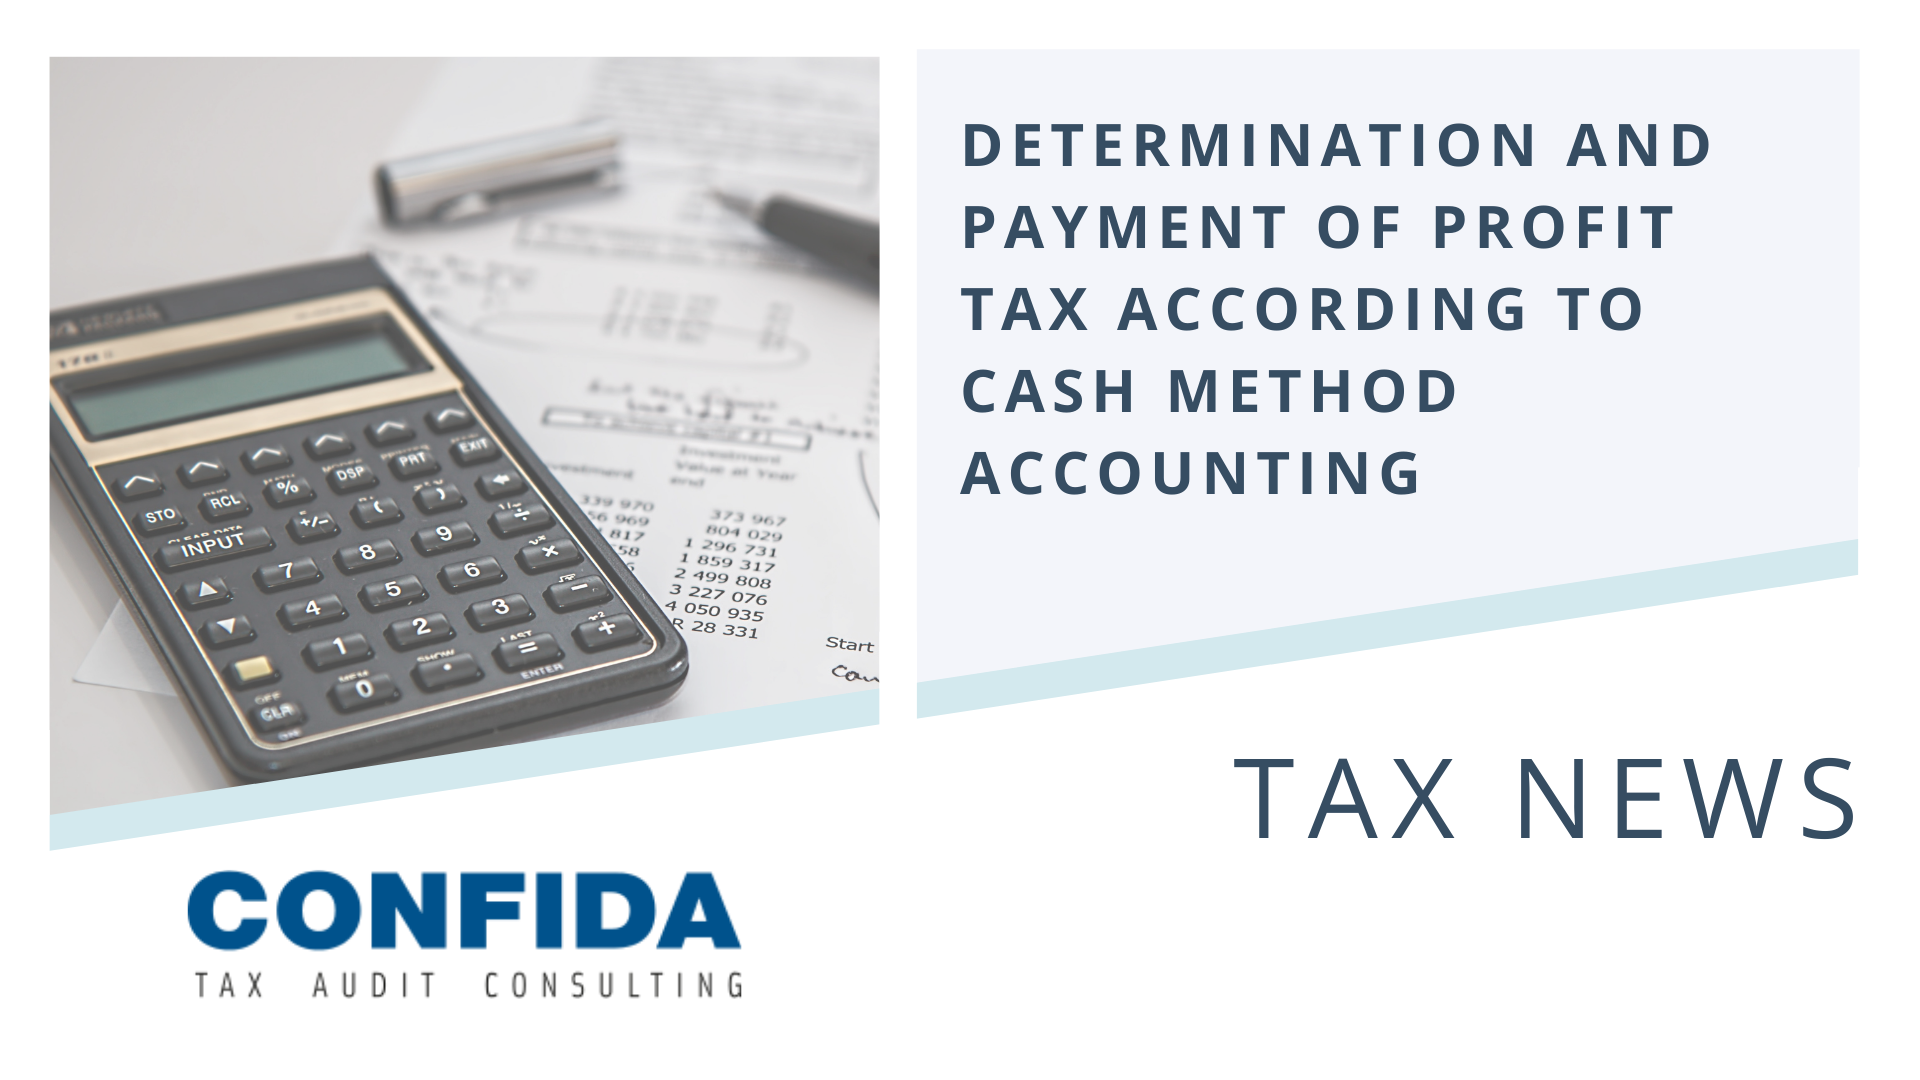 Determination and Payment of Profit Tax